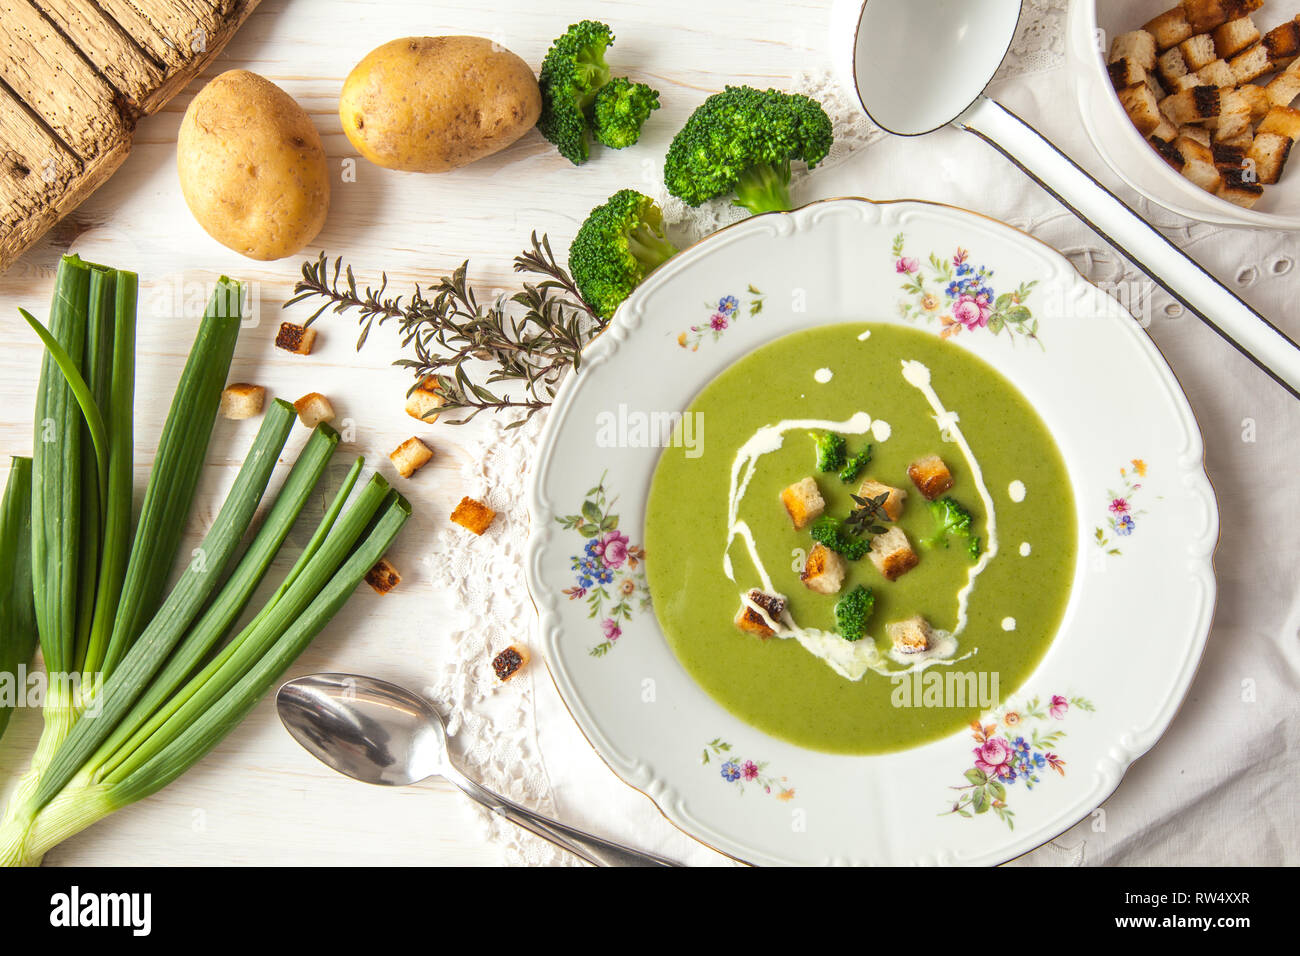 Spring detox broccoli green cream soup with potatoes and vegan cream in bowl on bright wooden board over white background, top view. Clean eating Stock Photo